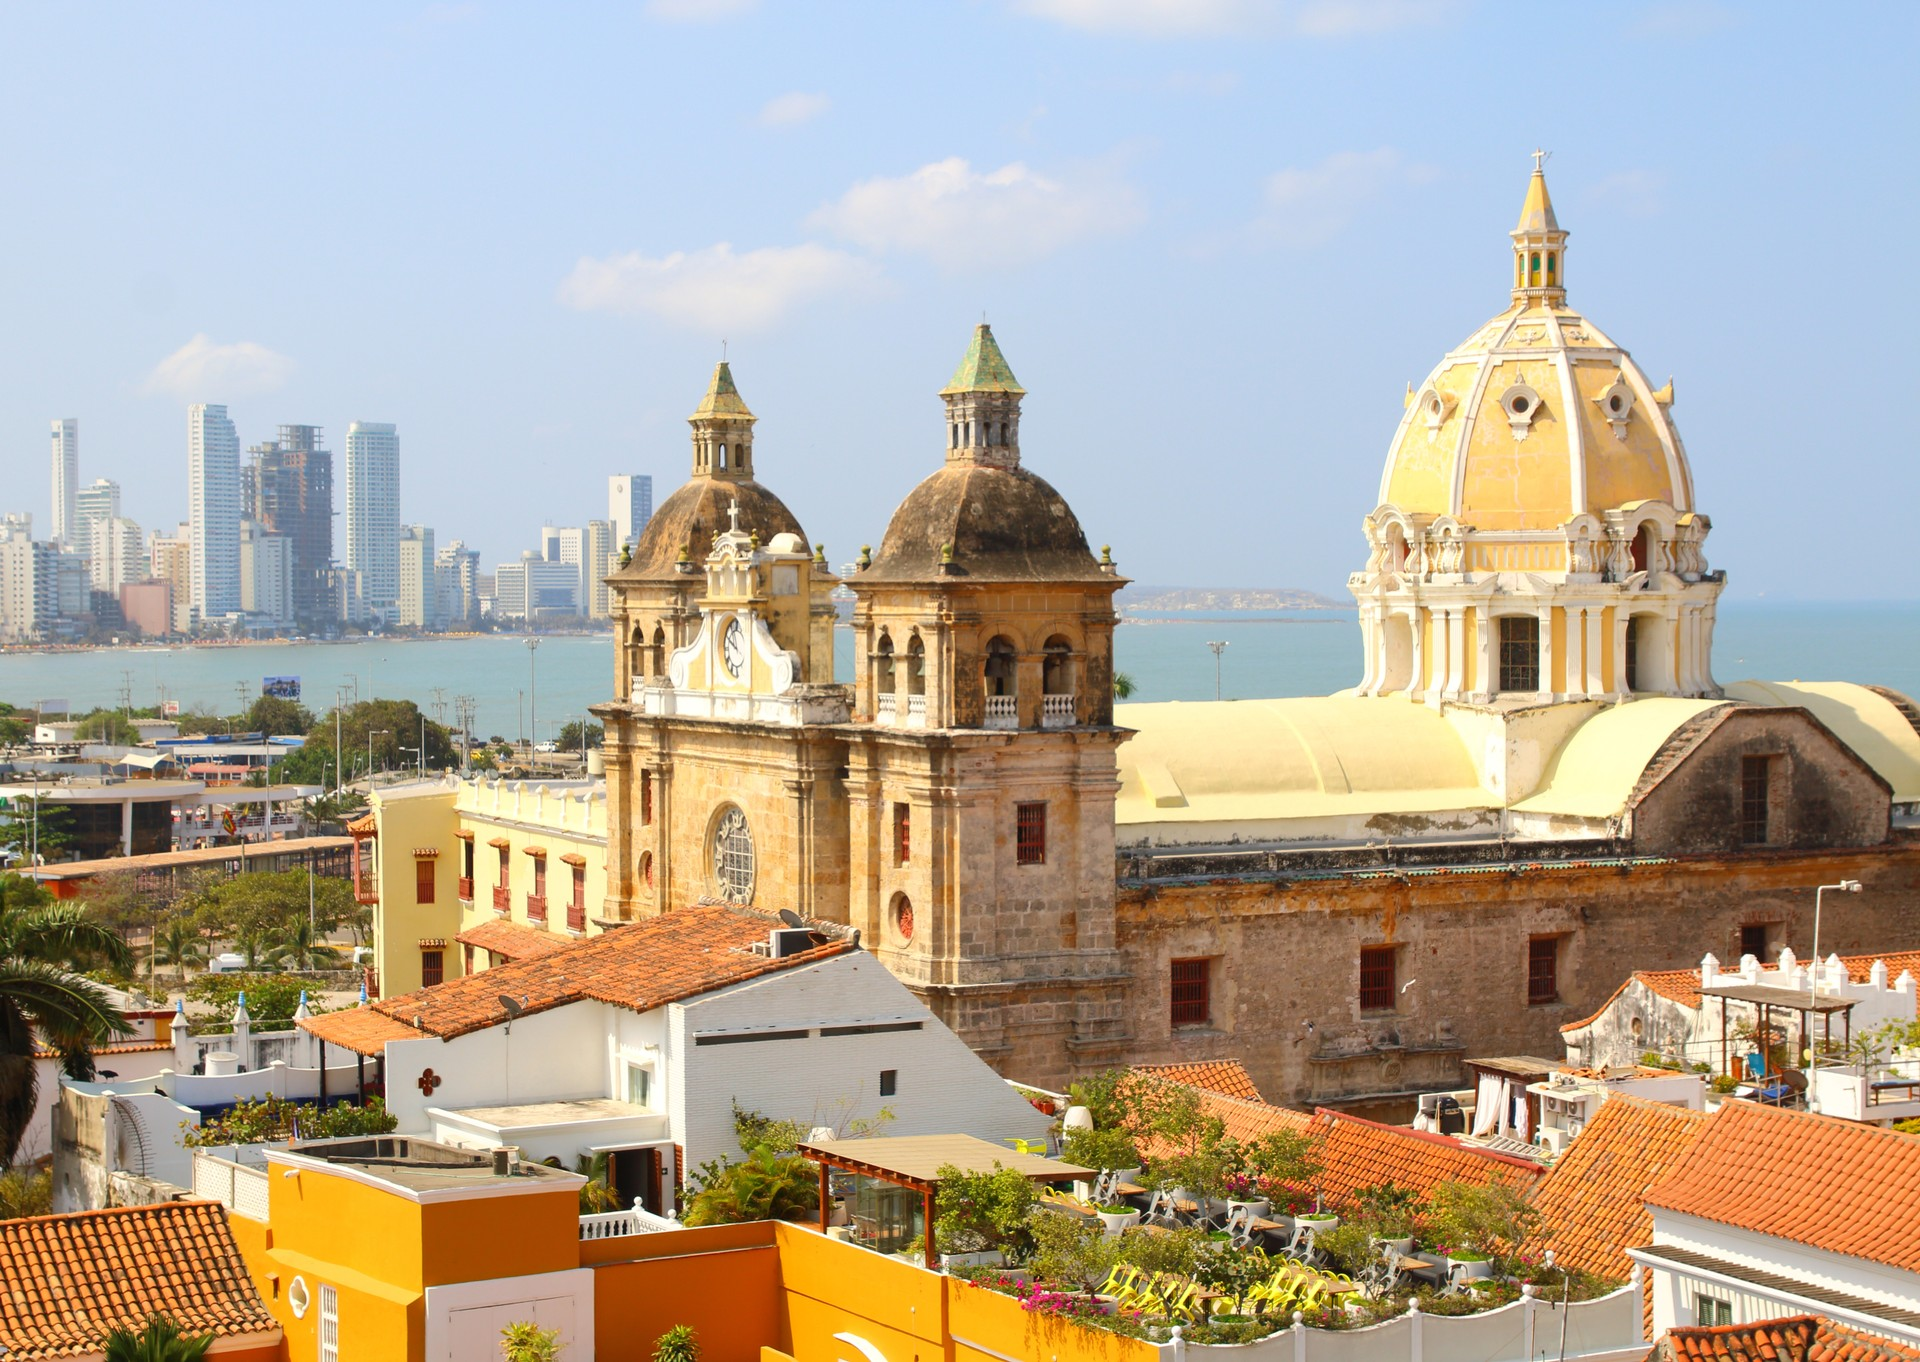 View over Cartagena, Colombia